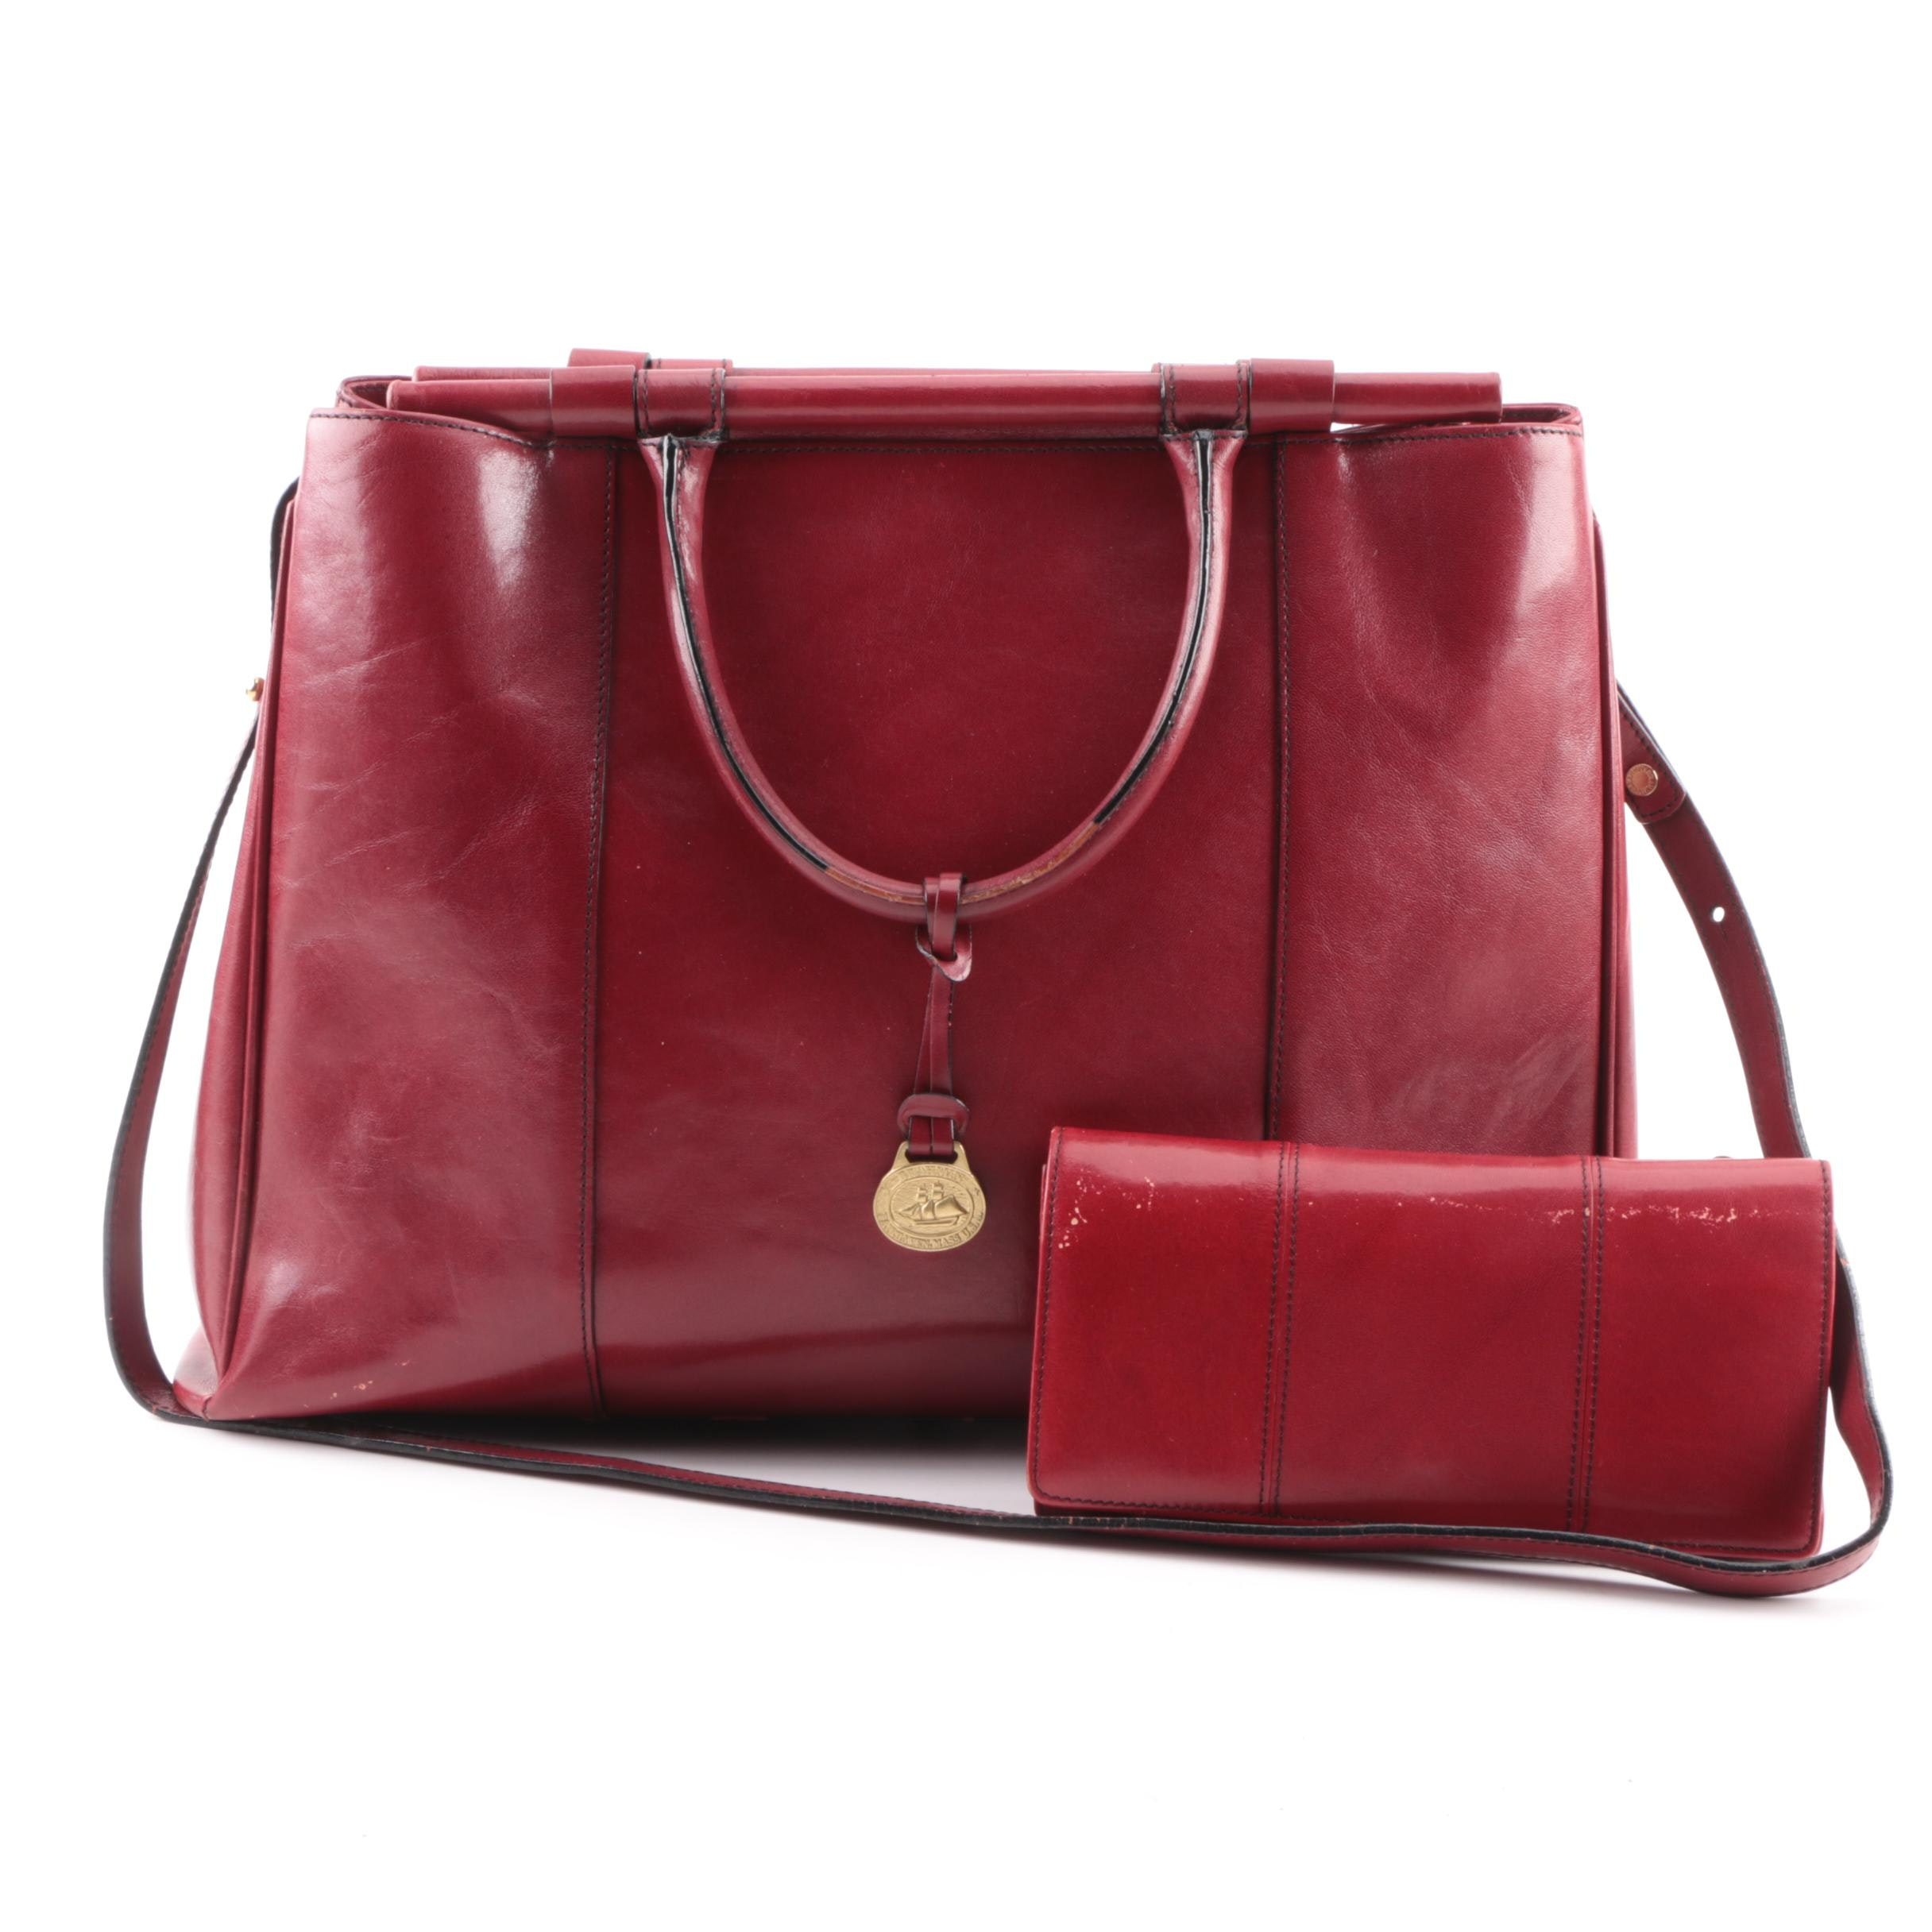 Brahmin Red Leather Satchel with Coordinating Wallet